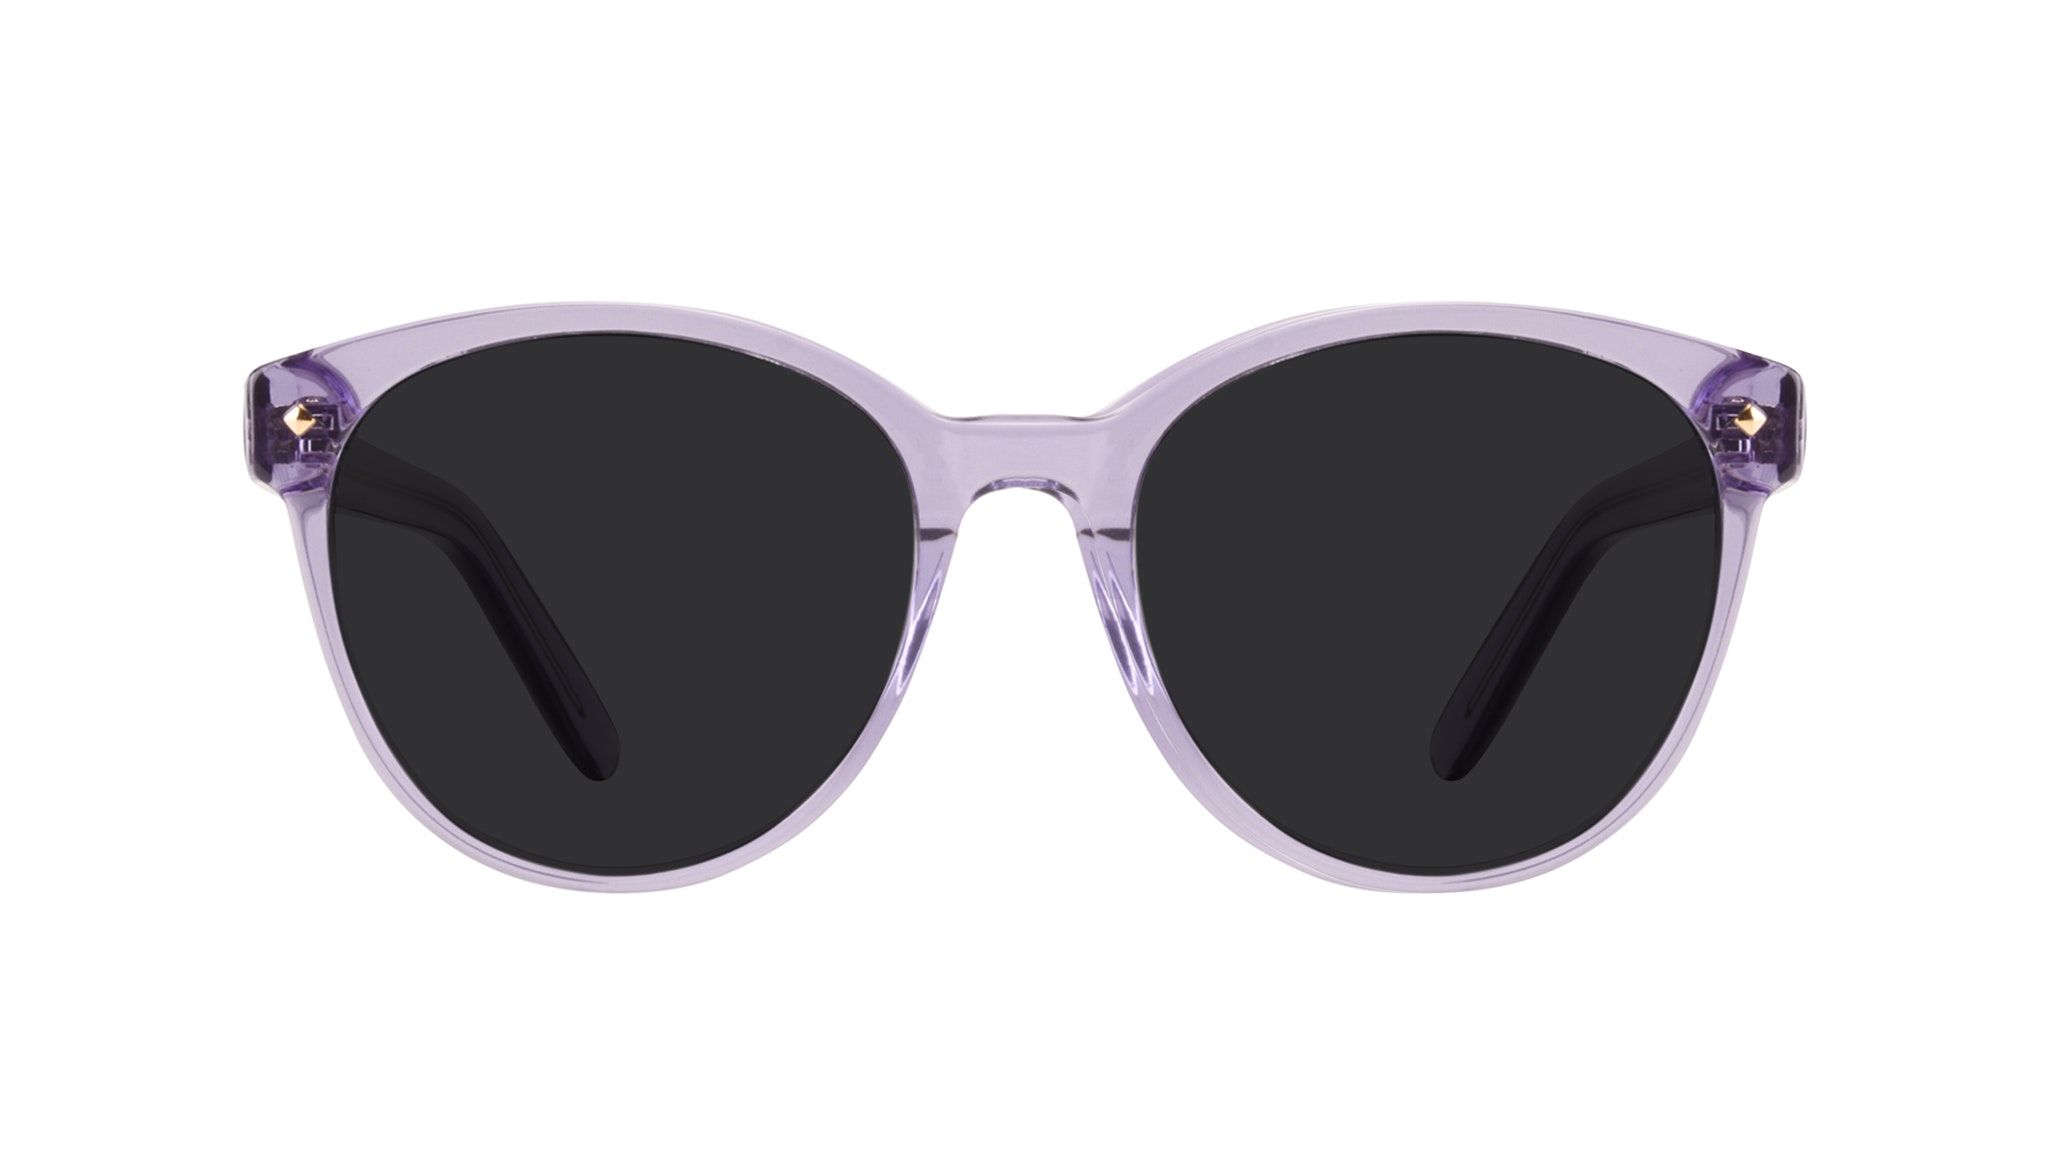 Affordable Fashion Glasses Cat Eye Round Sunglasses Women Eclipse Lavender